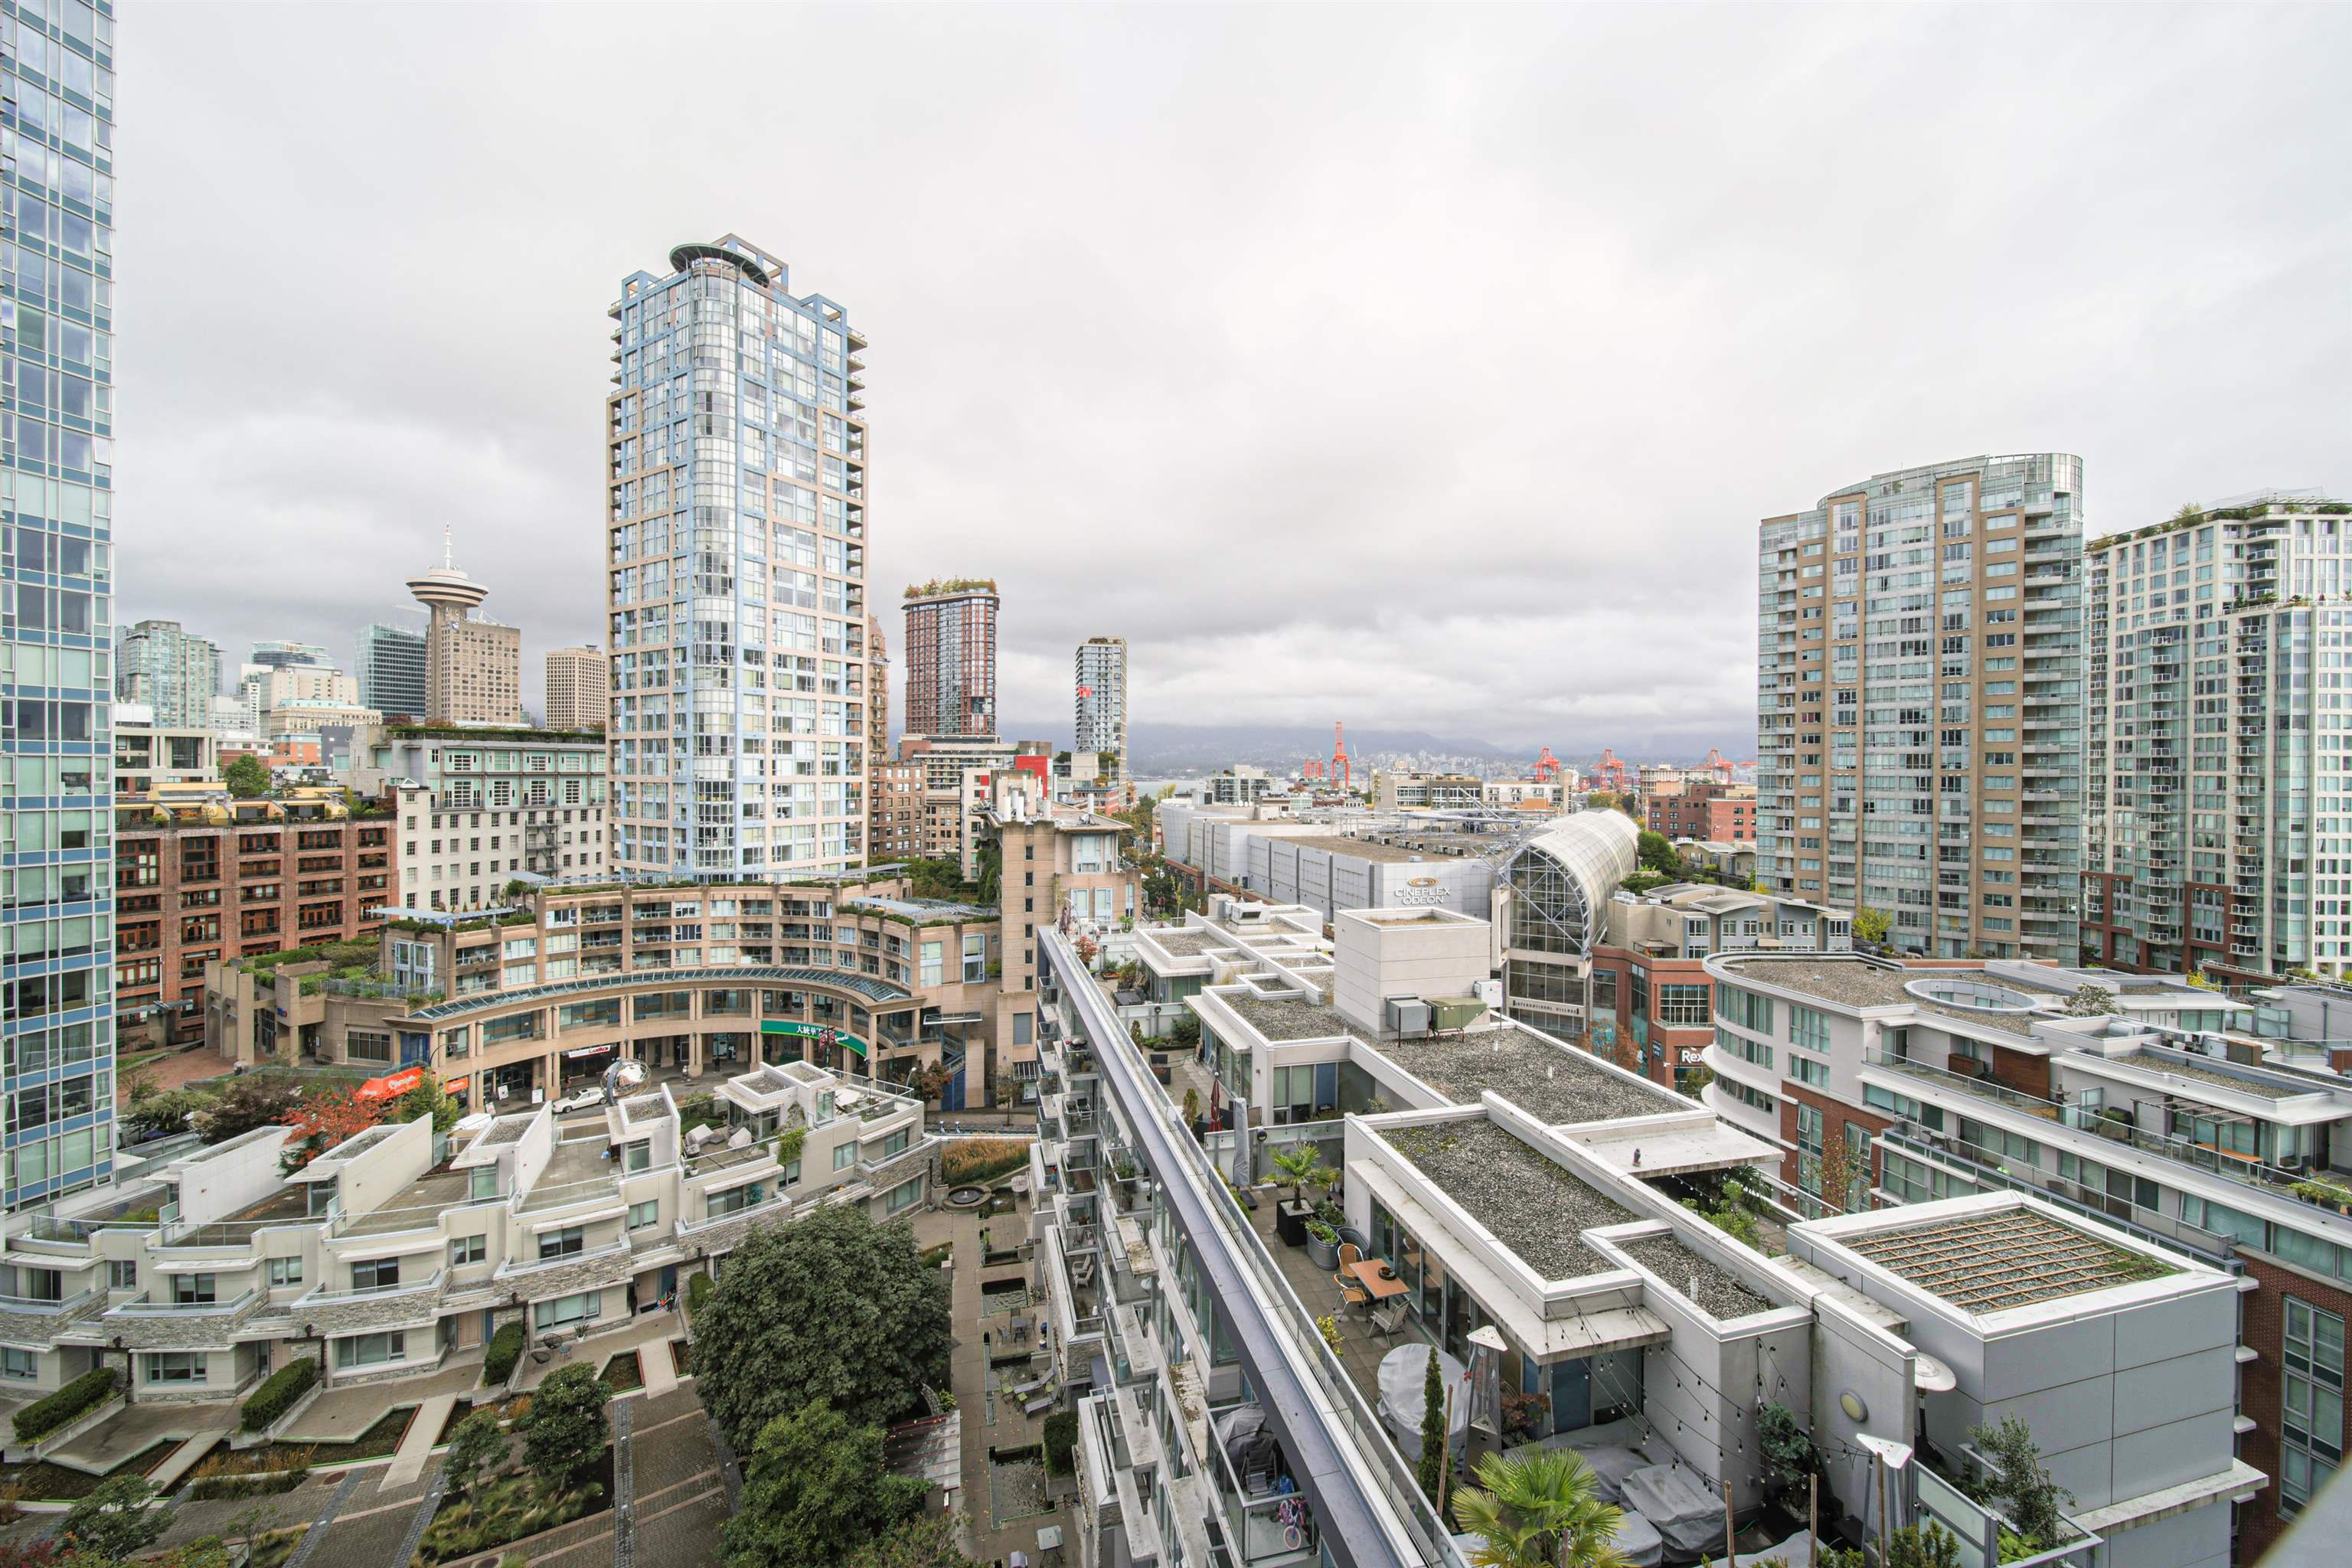 1501 689 ABBOTT STREET - Downtown VW Apartment/Condo for sale, 2 Bedrooms (R2620569) - #1